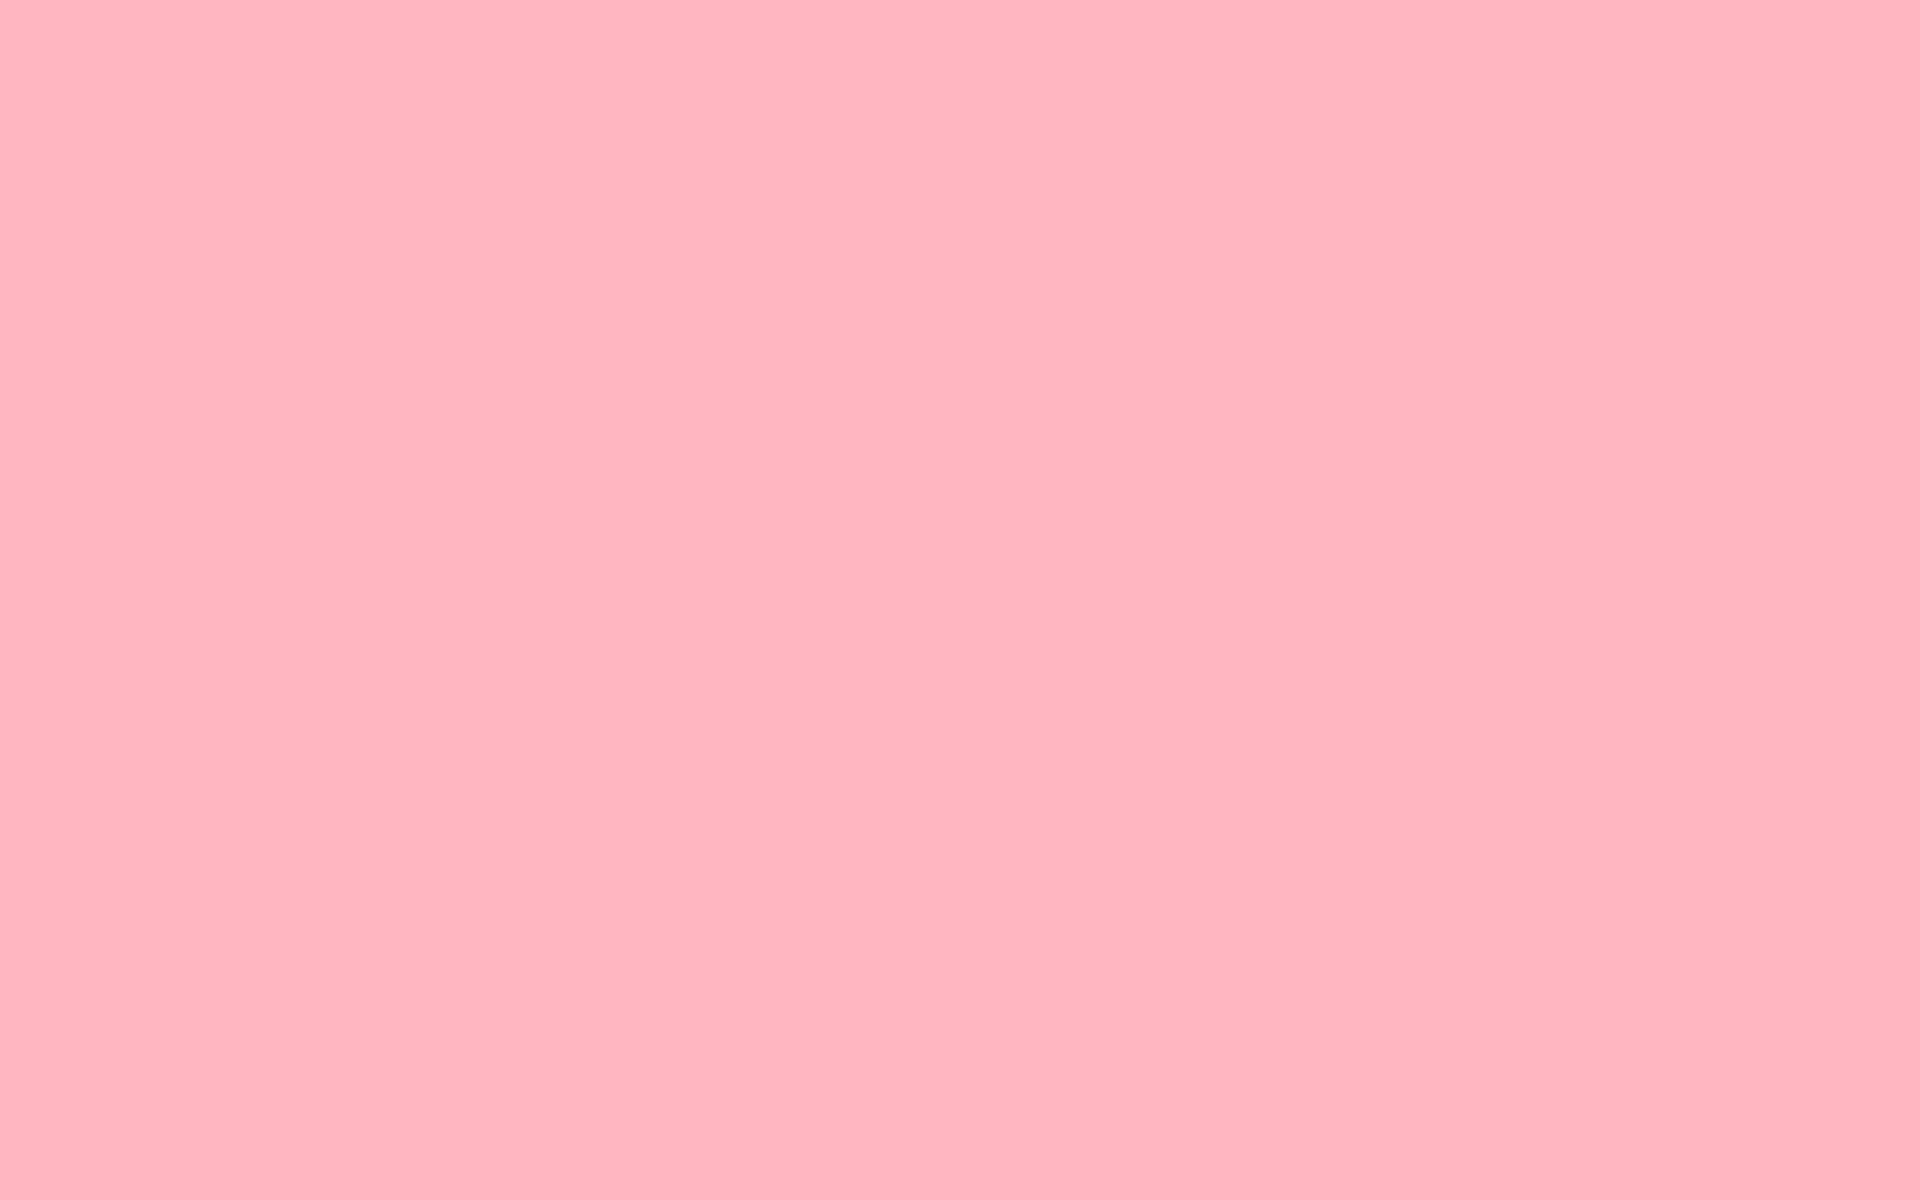 1920x1200 resolution Light Pink solid color background view and 1920x1200